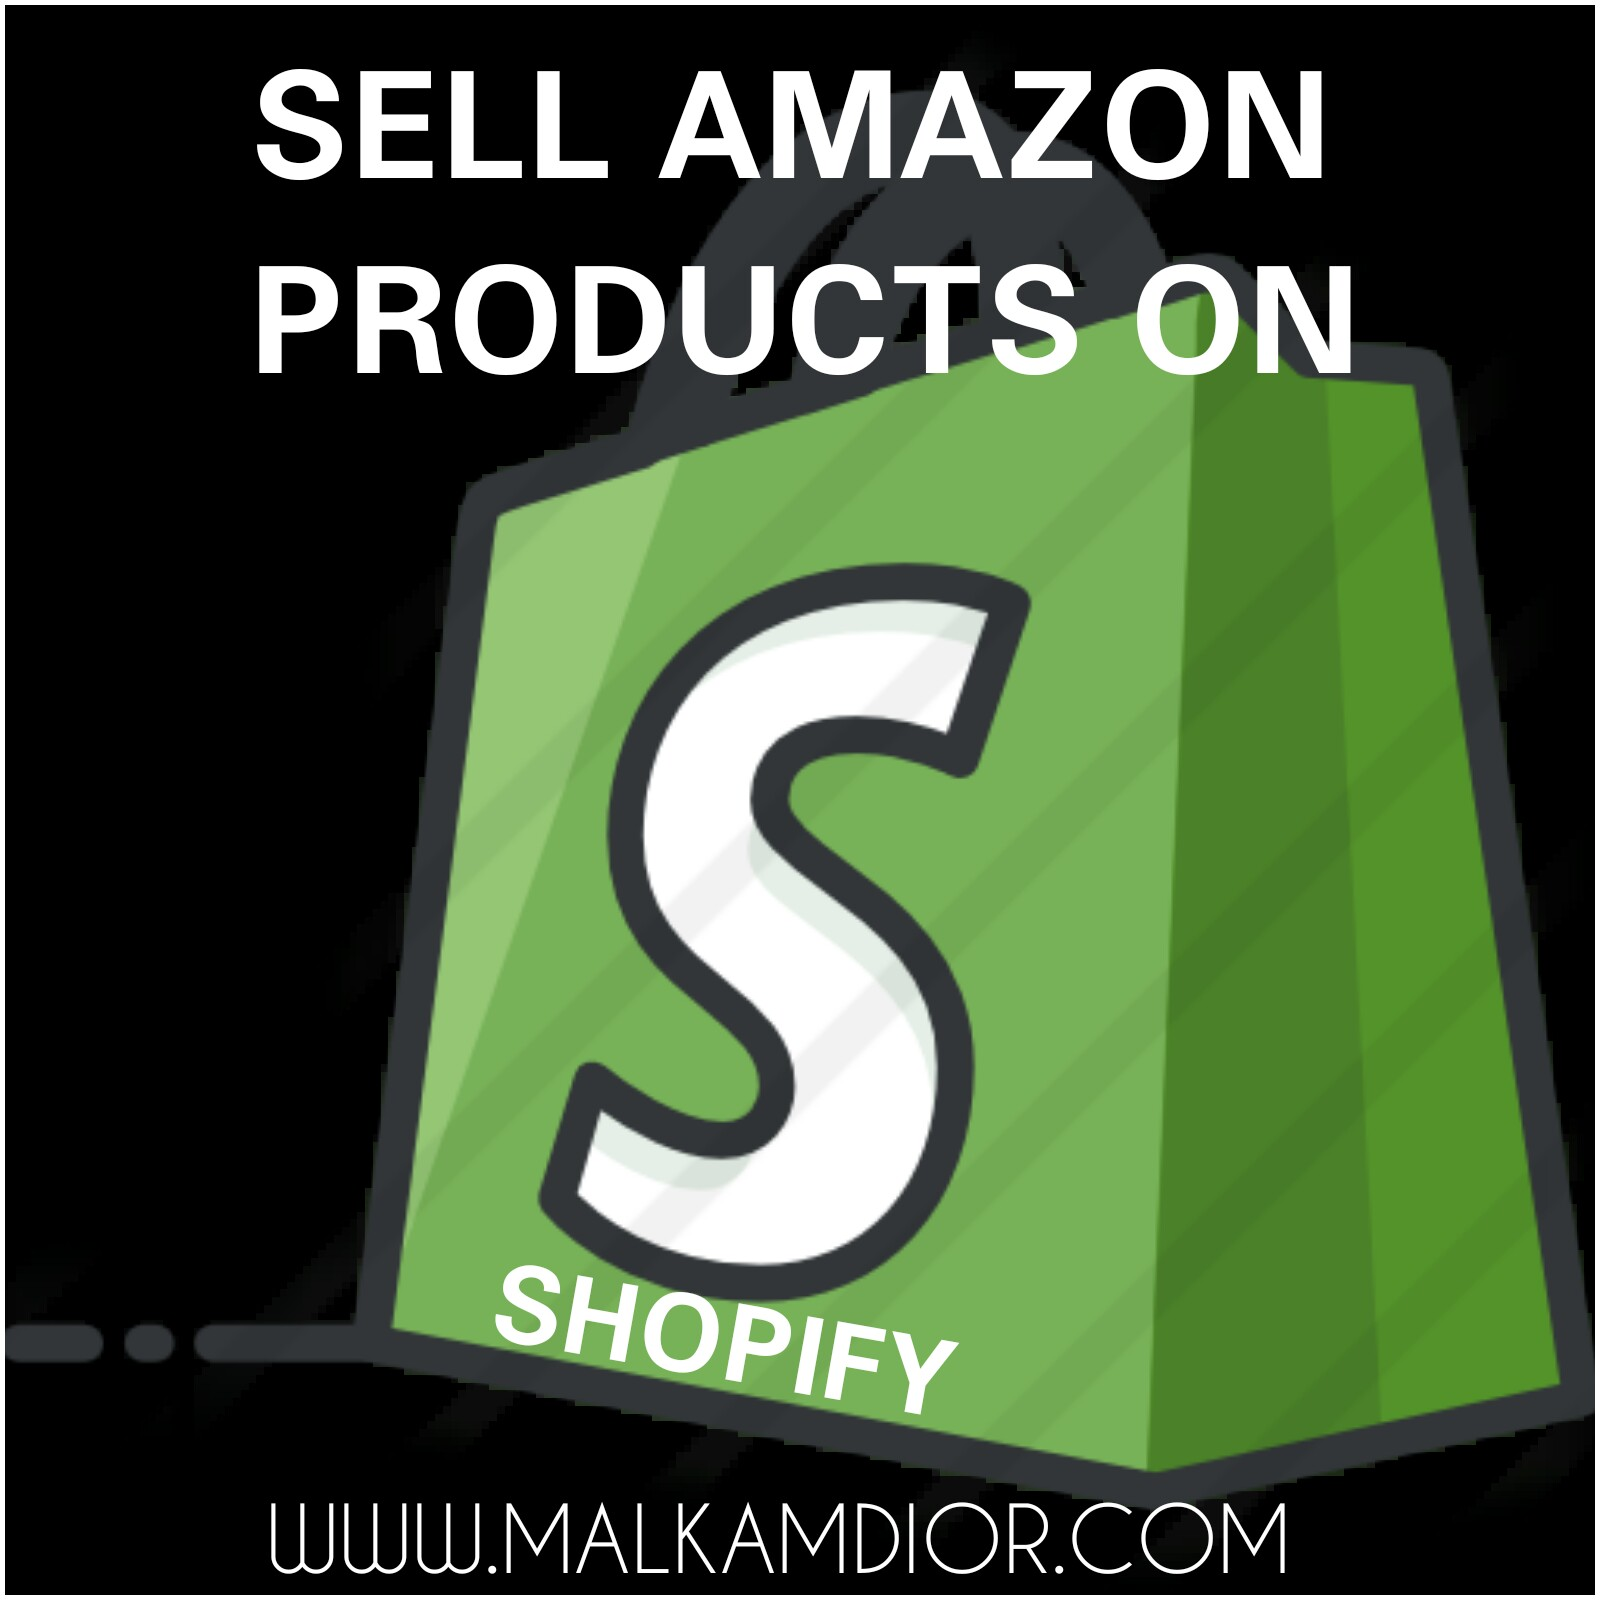 How to Make More Money Selling Amazon Products on Shopify